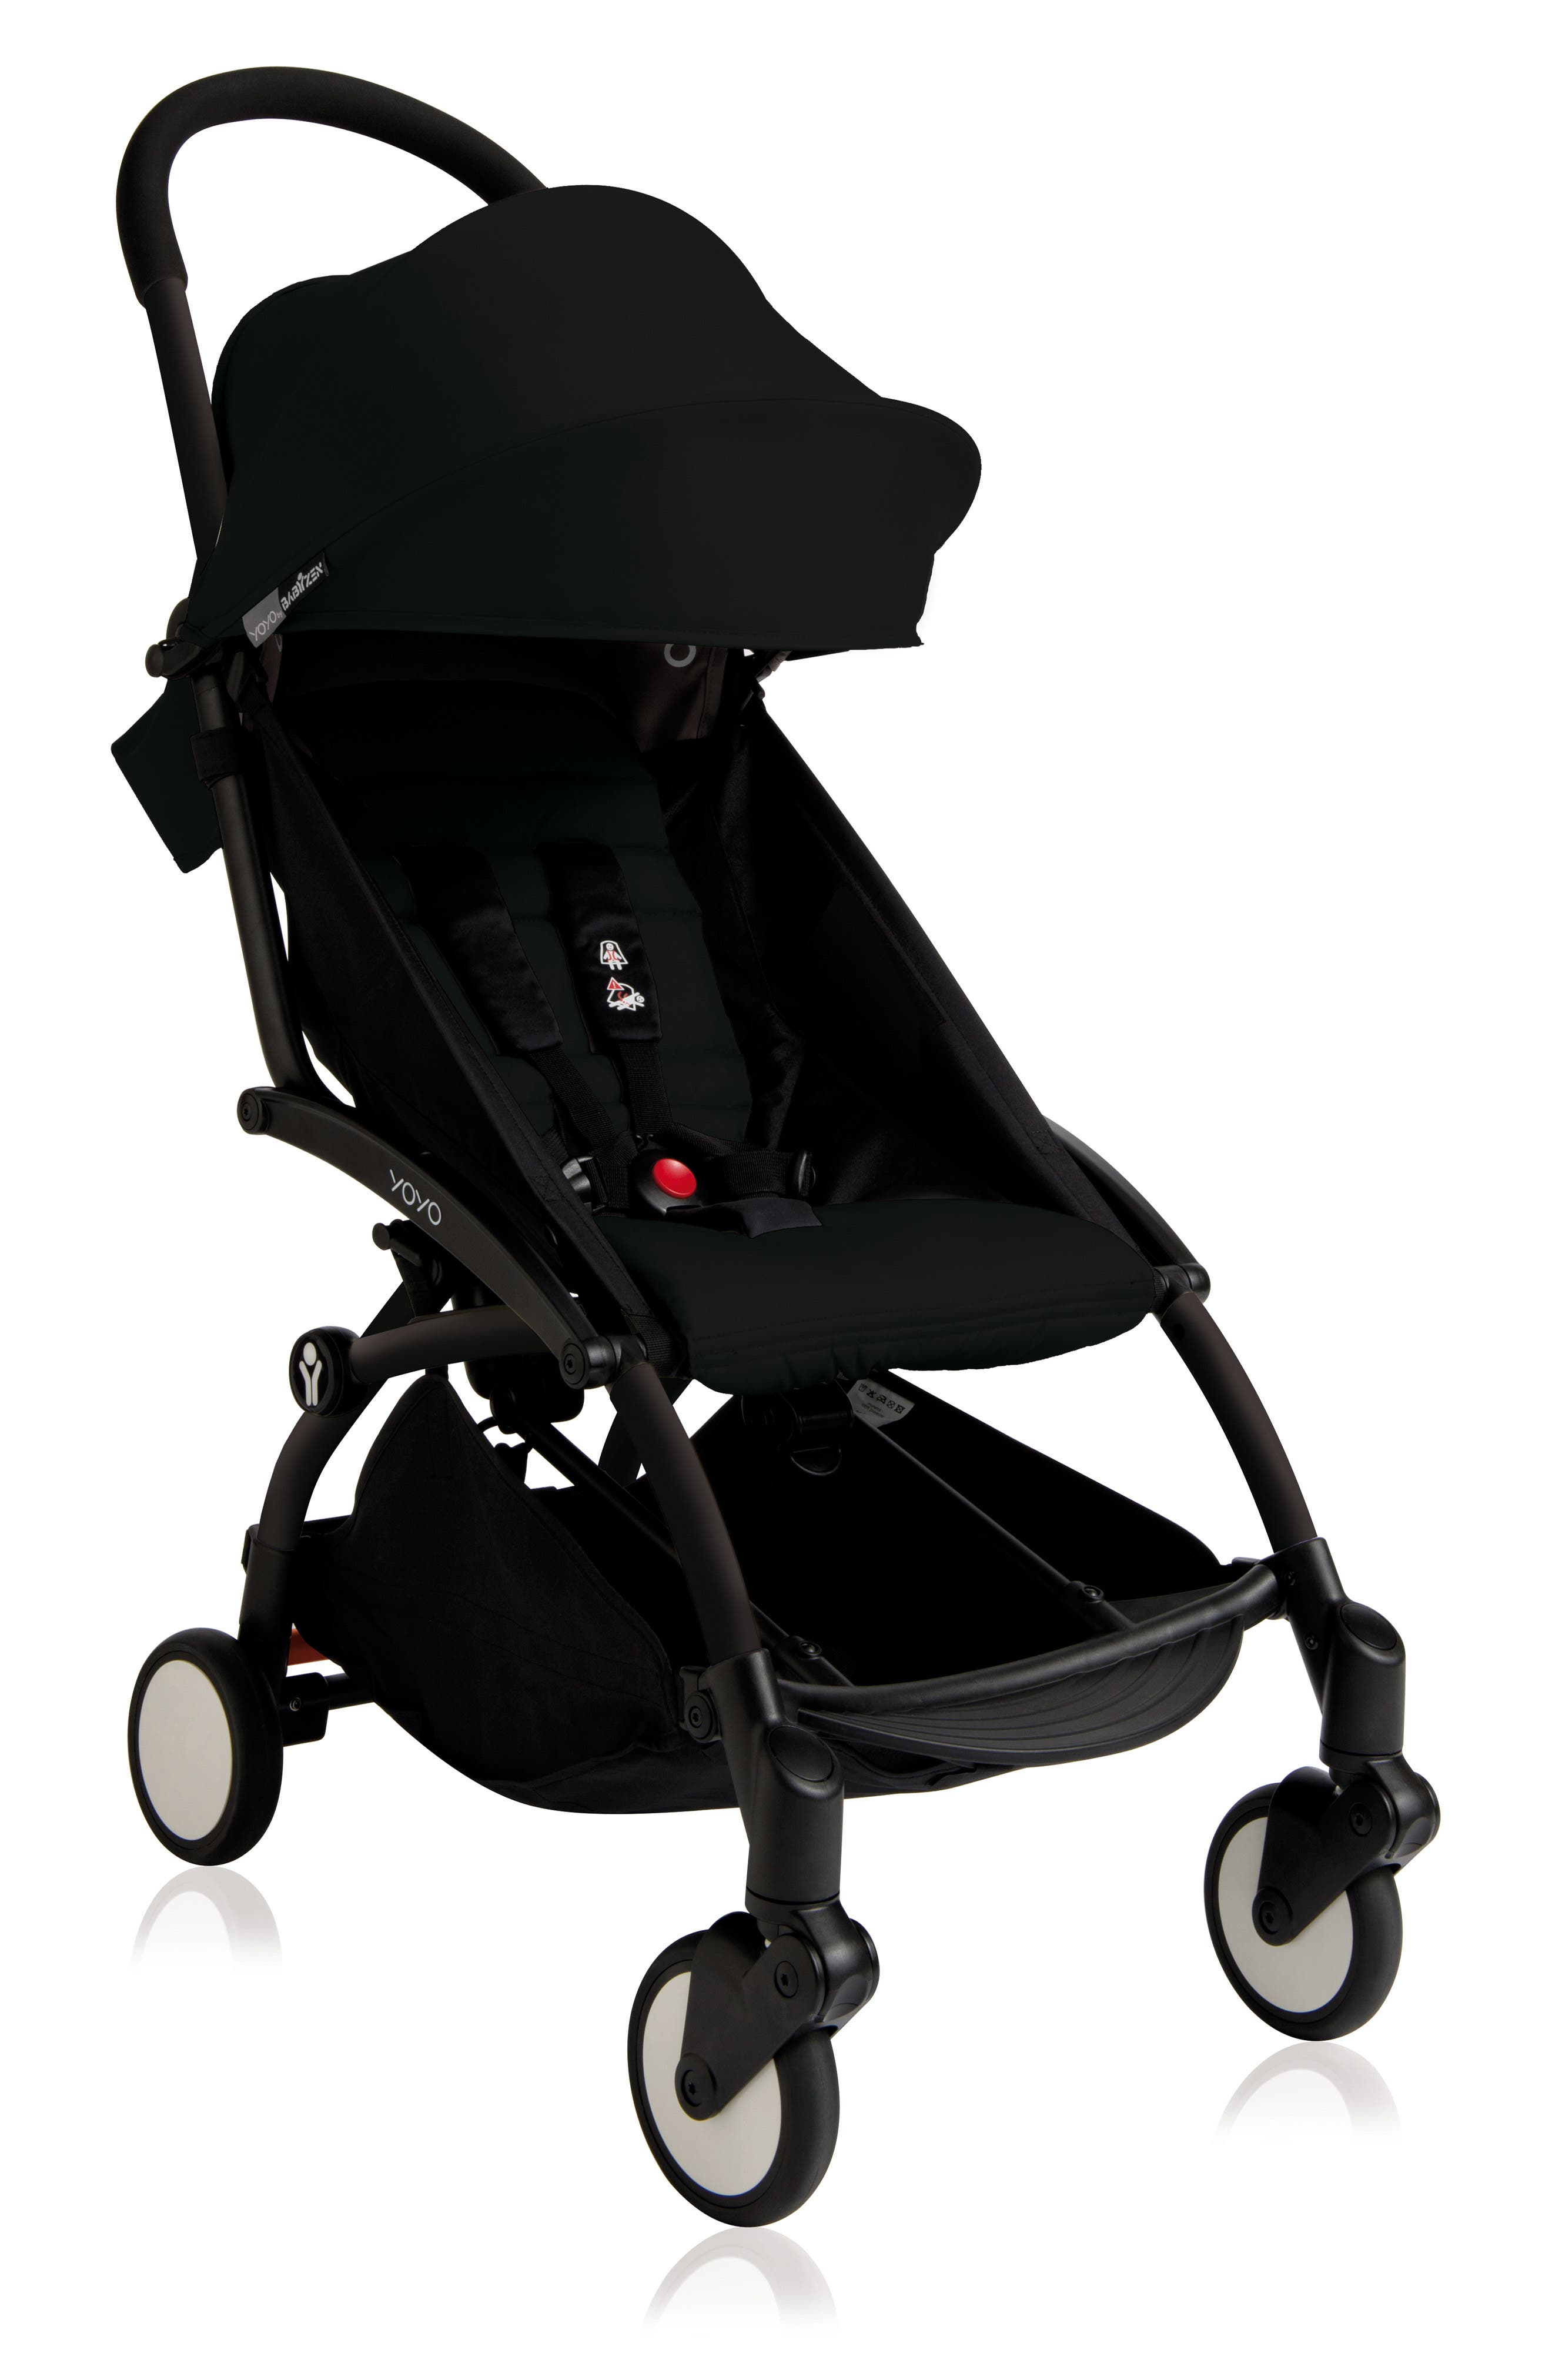 BABYZEN<SUP>™</SUP> BABYZEN YOYO+ Complete Stroller with Toddler/Little Kid Color Pack Fabric Set, Main, color, BLACK/ BLACK